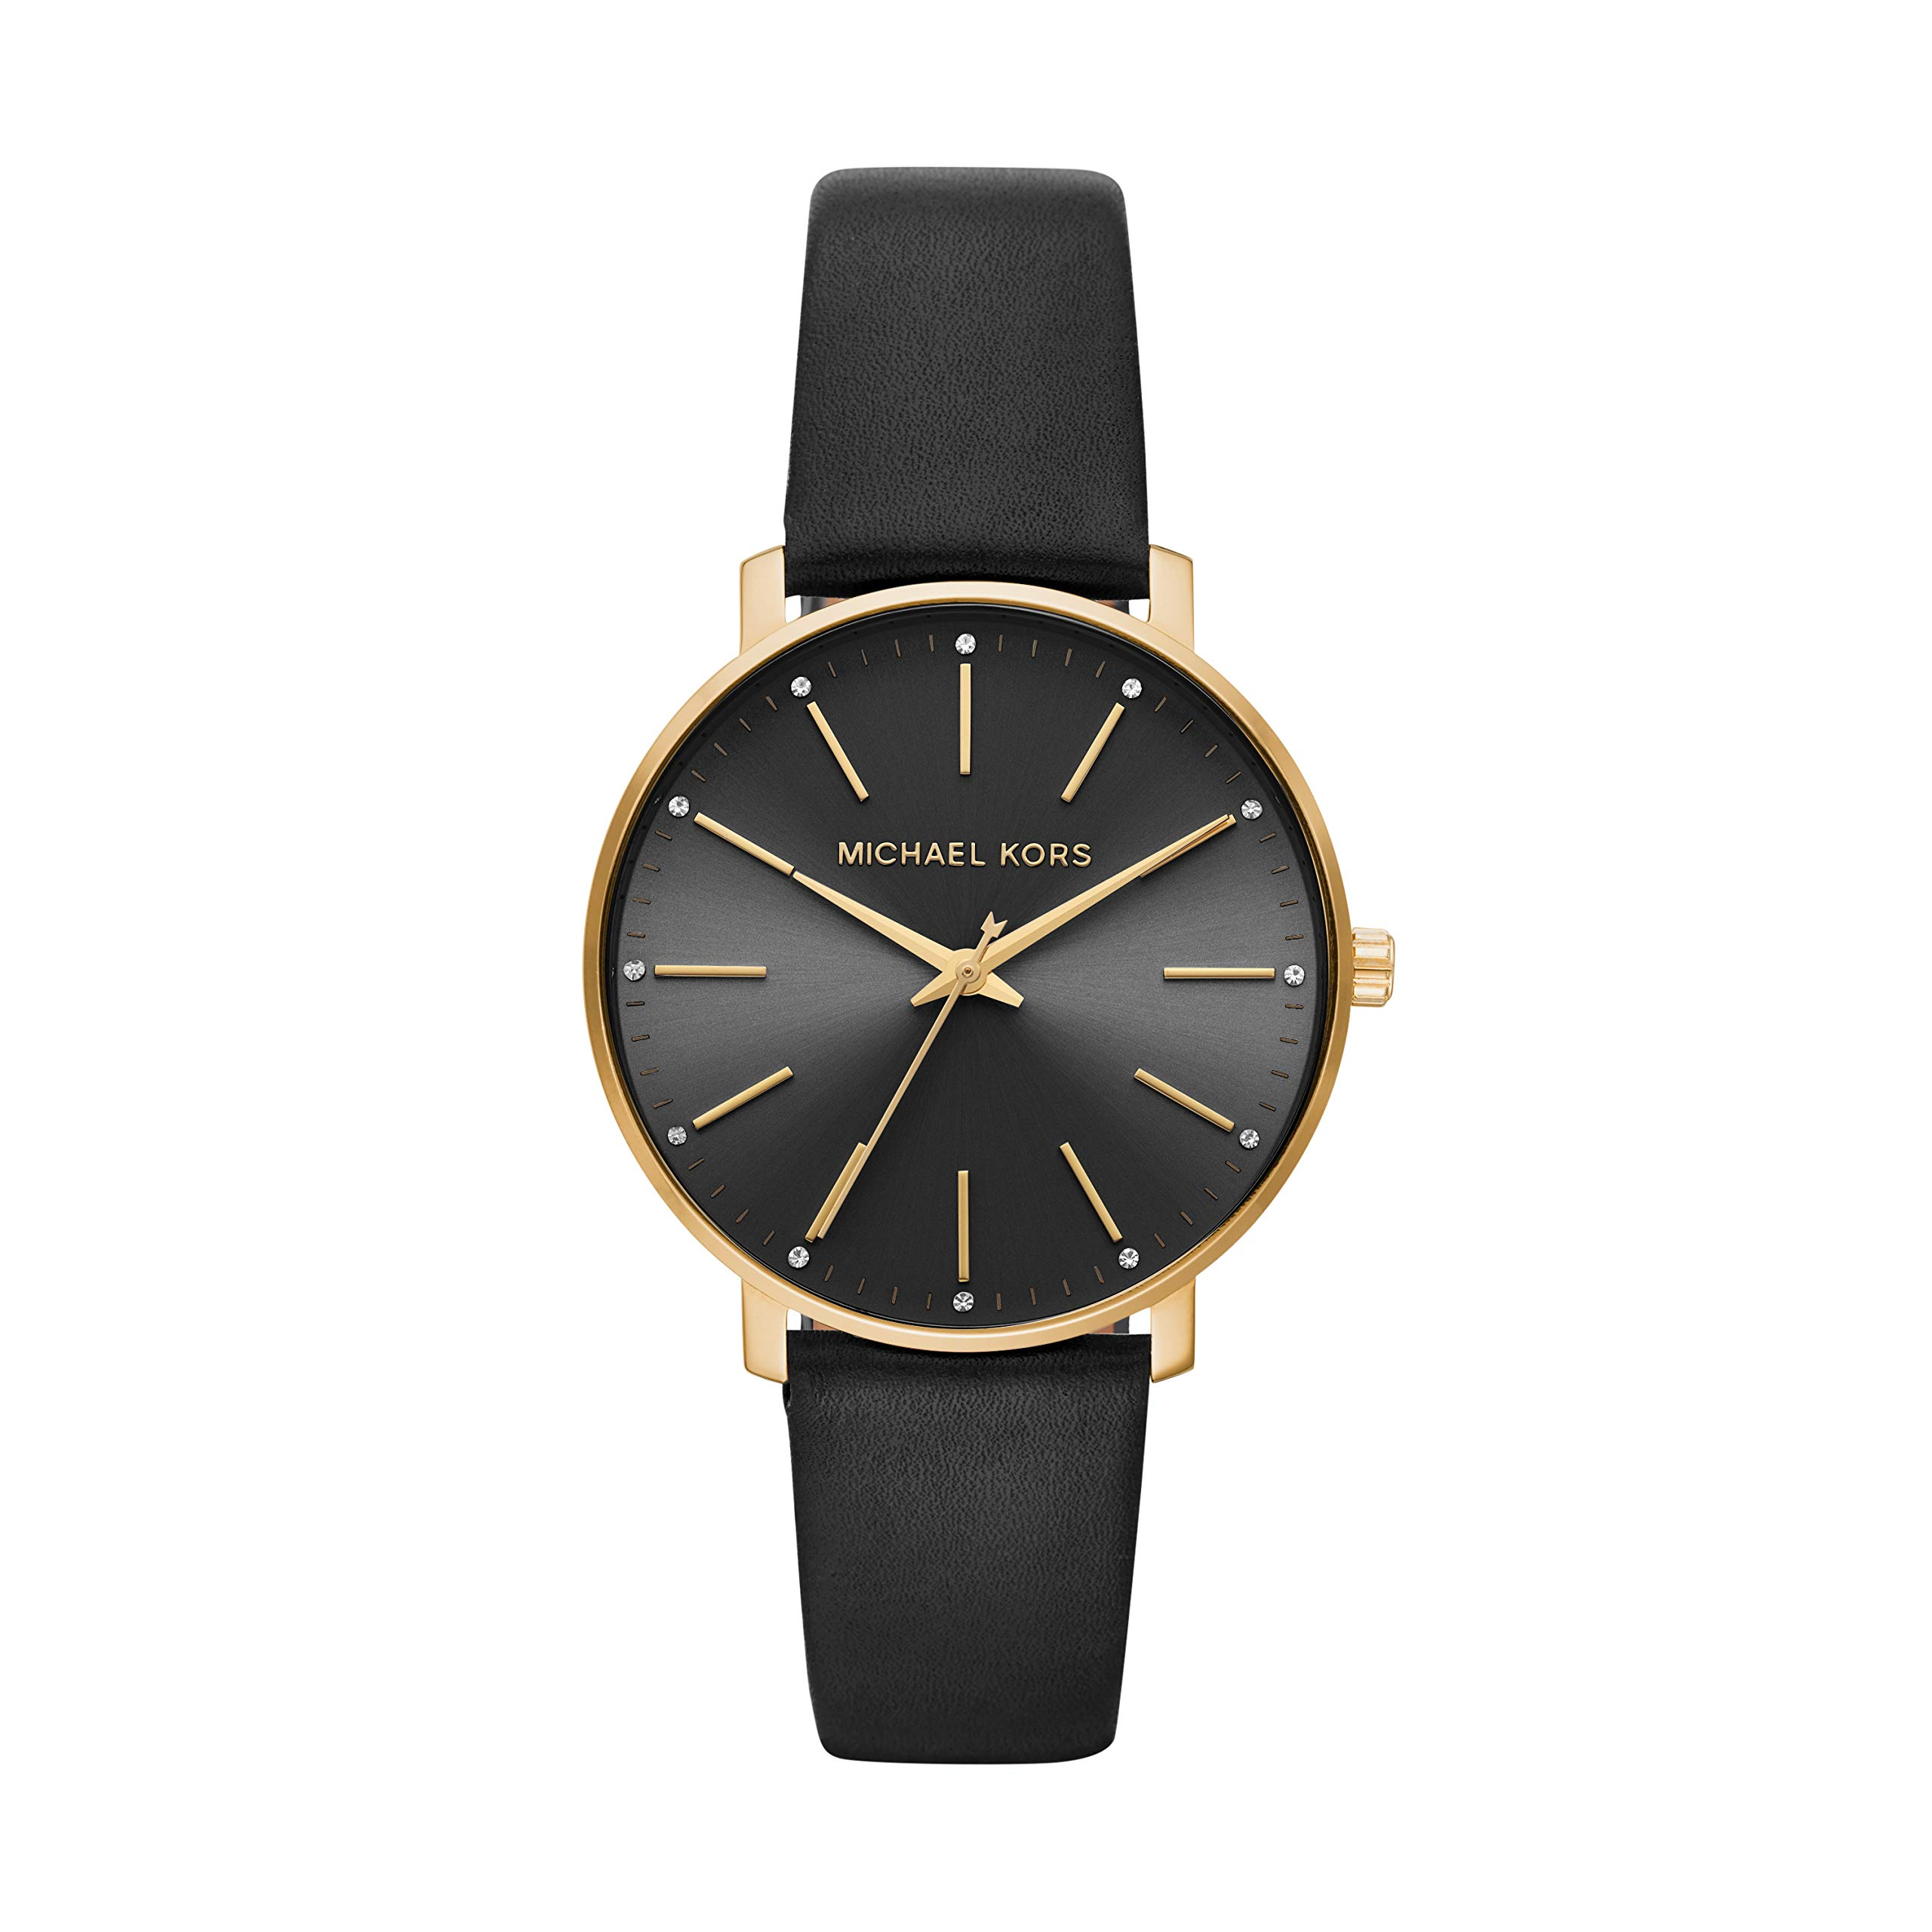 Michael Kors Women's Pyper Stainless Steel Quartz Watch with Leather Strap, Gold/Black, 18 by Michael Kors